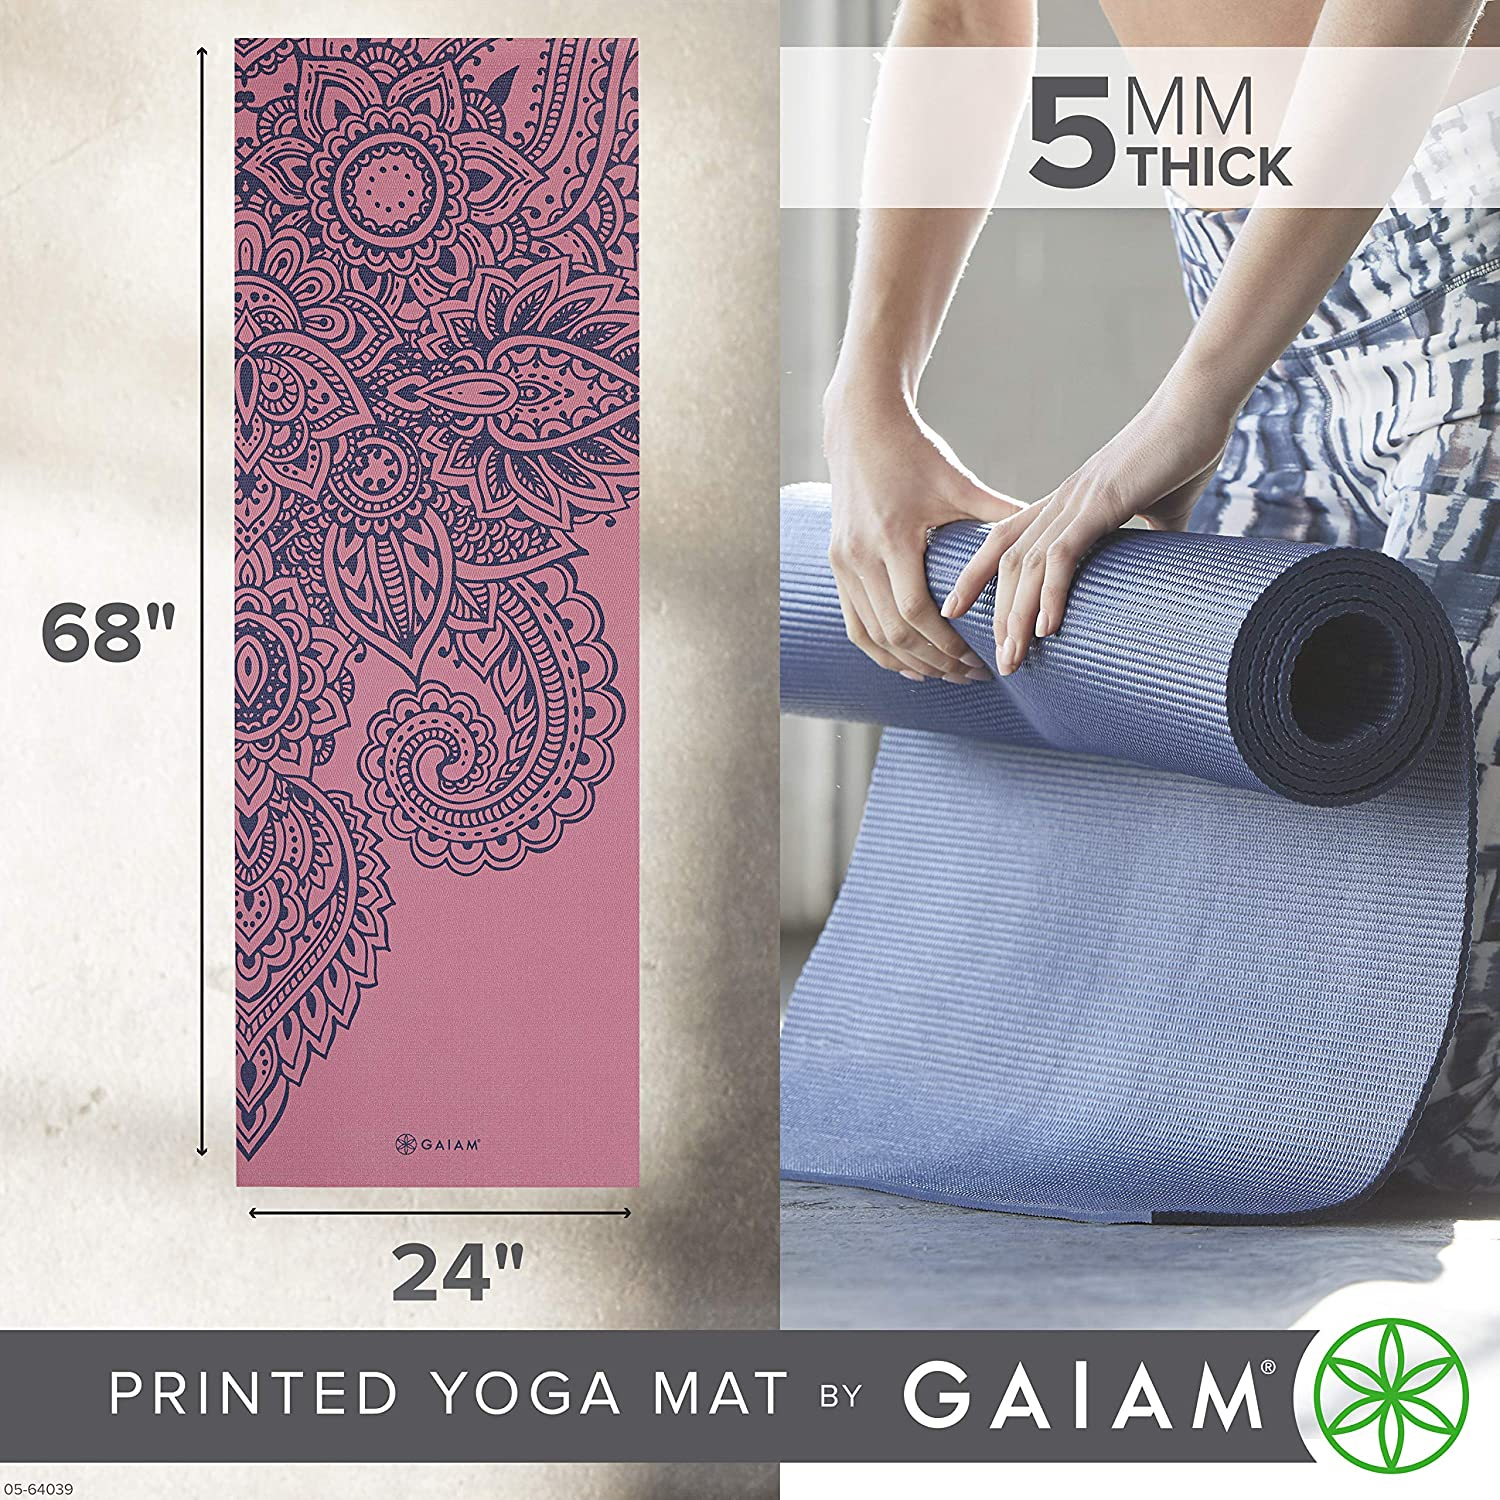 Premium 5mm Print Thick Non Slip Exercise /& Fitness Mat for All Types of Yoga Pilates /& Floor Workouts 68 x 24 x 5mm Gaiam Yoga Mat